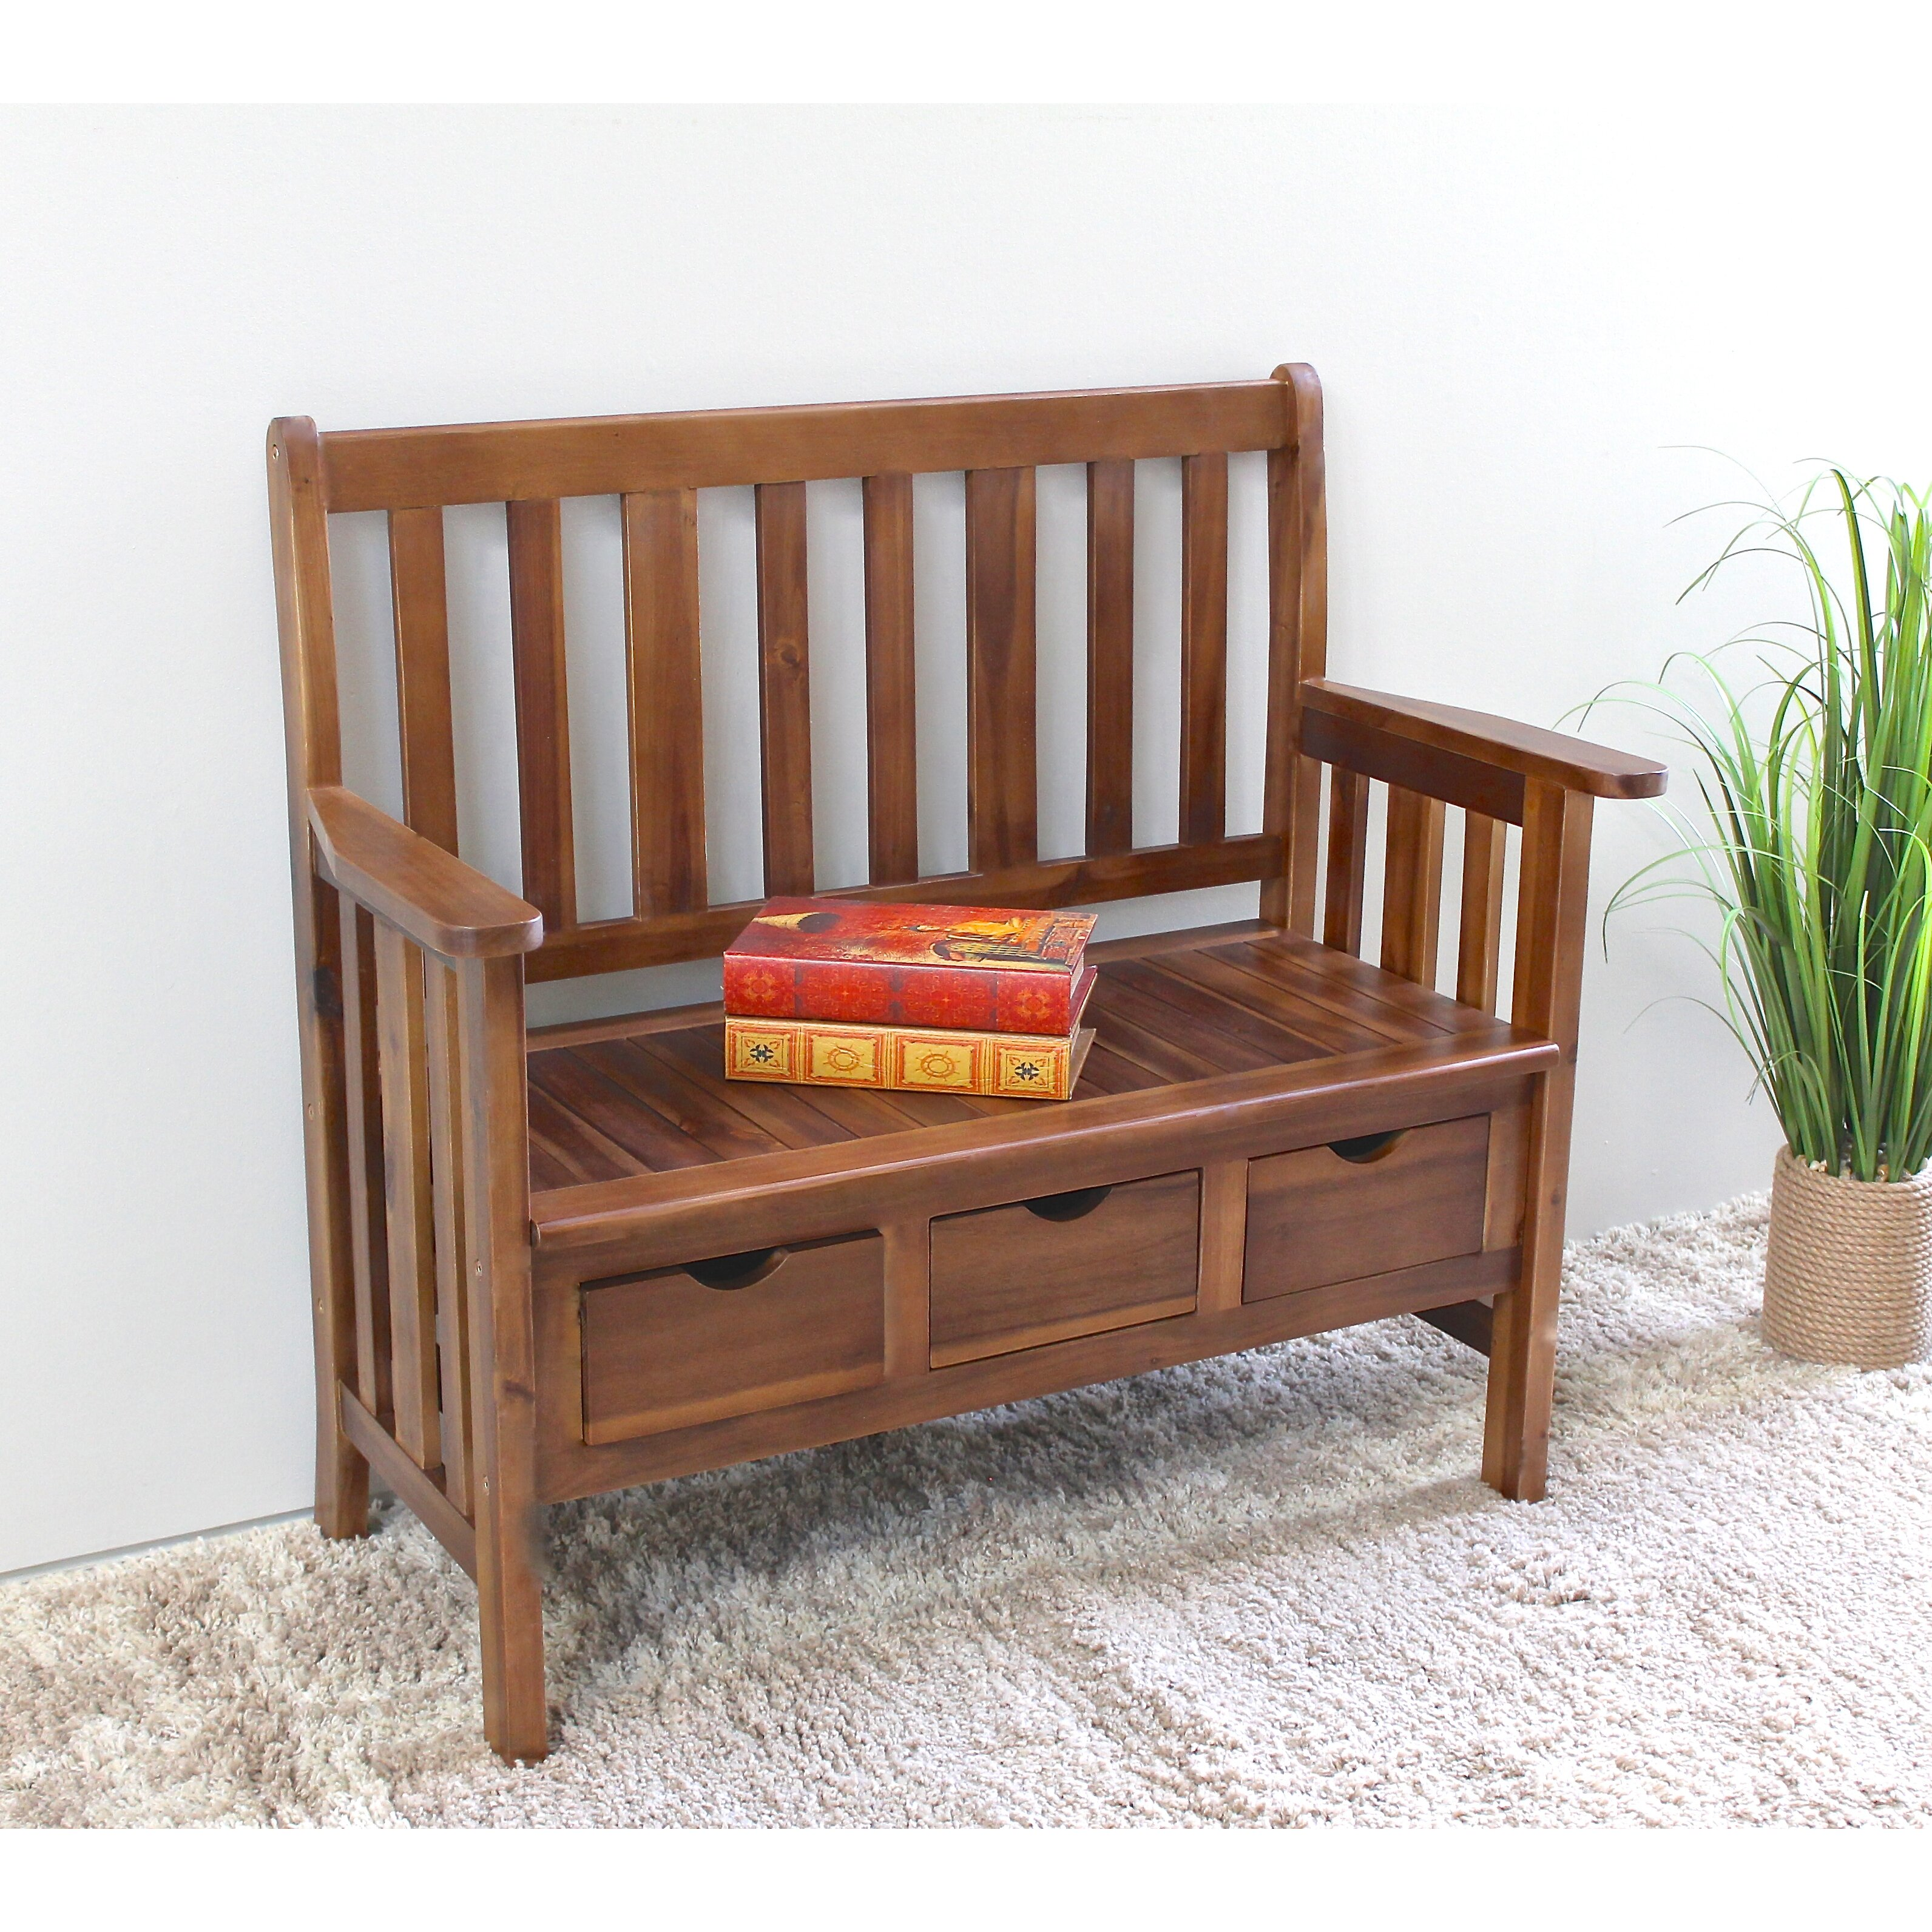 #A83323 Breakwater Bay Corbin Acacia Wood Storage Bench & Reviews Wayfair with 3184x3184 px of Brand New Wood Storage Benches 31843184 pic @ avoidforclosure.info